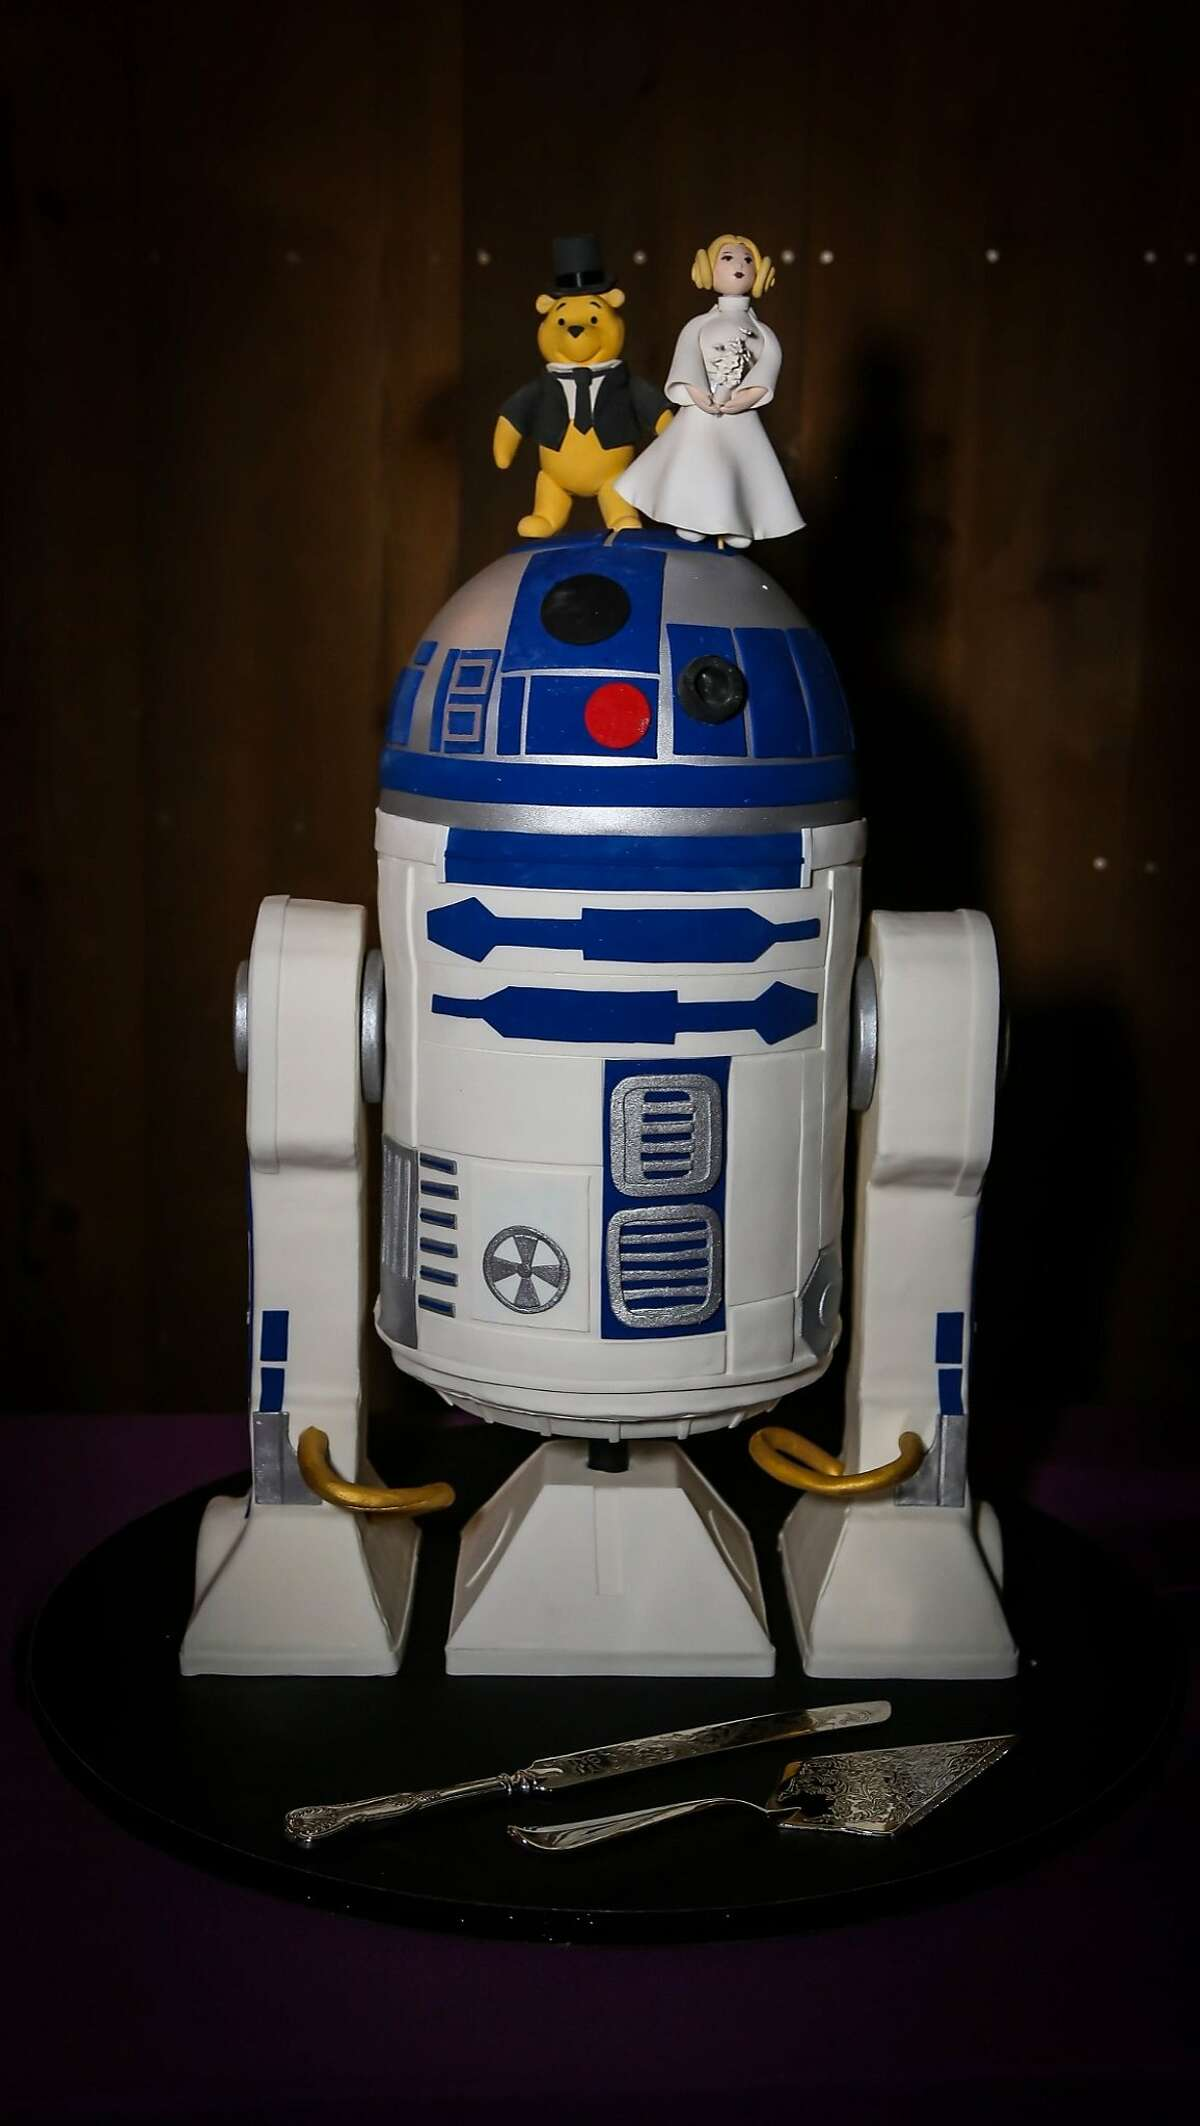 On Jan. 11, Marcella Mission and Ike Shehadeh met at the Palace of Fine Arts rotunda and exchanged more vows. The R2D2-shaped cake (the couple are